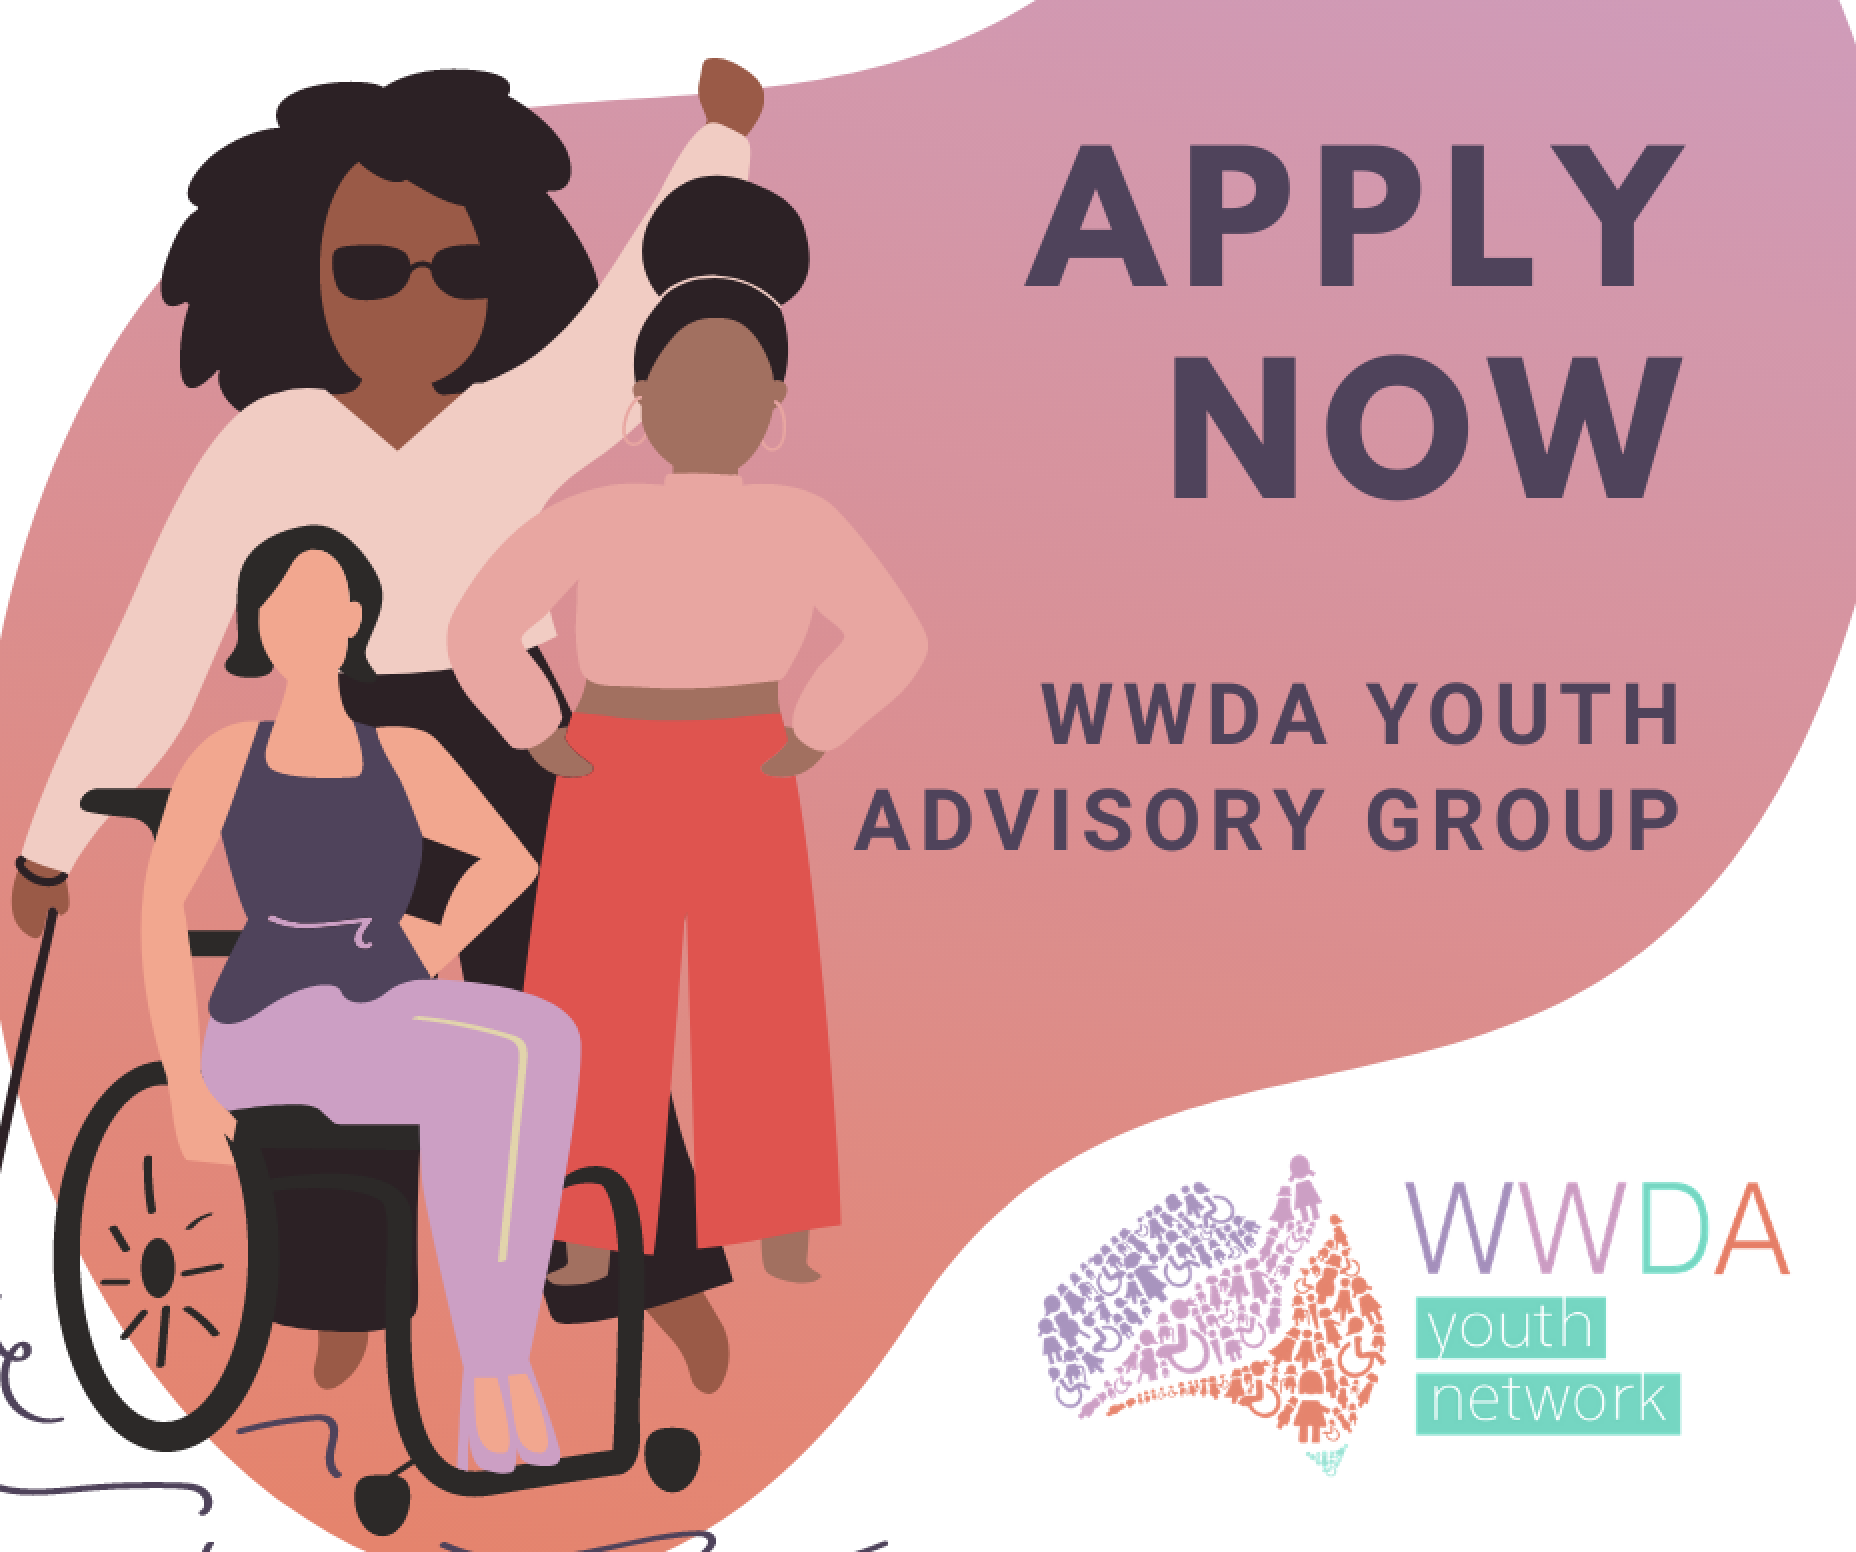 Tile image with illustrations of young women with disability on the left and text on the right: 'Apply Now. WWDA Youth Advisory Group.'